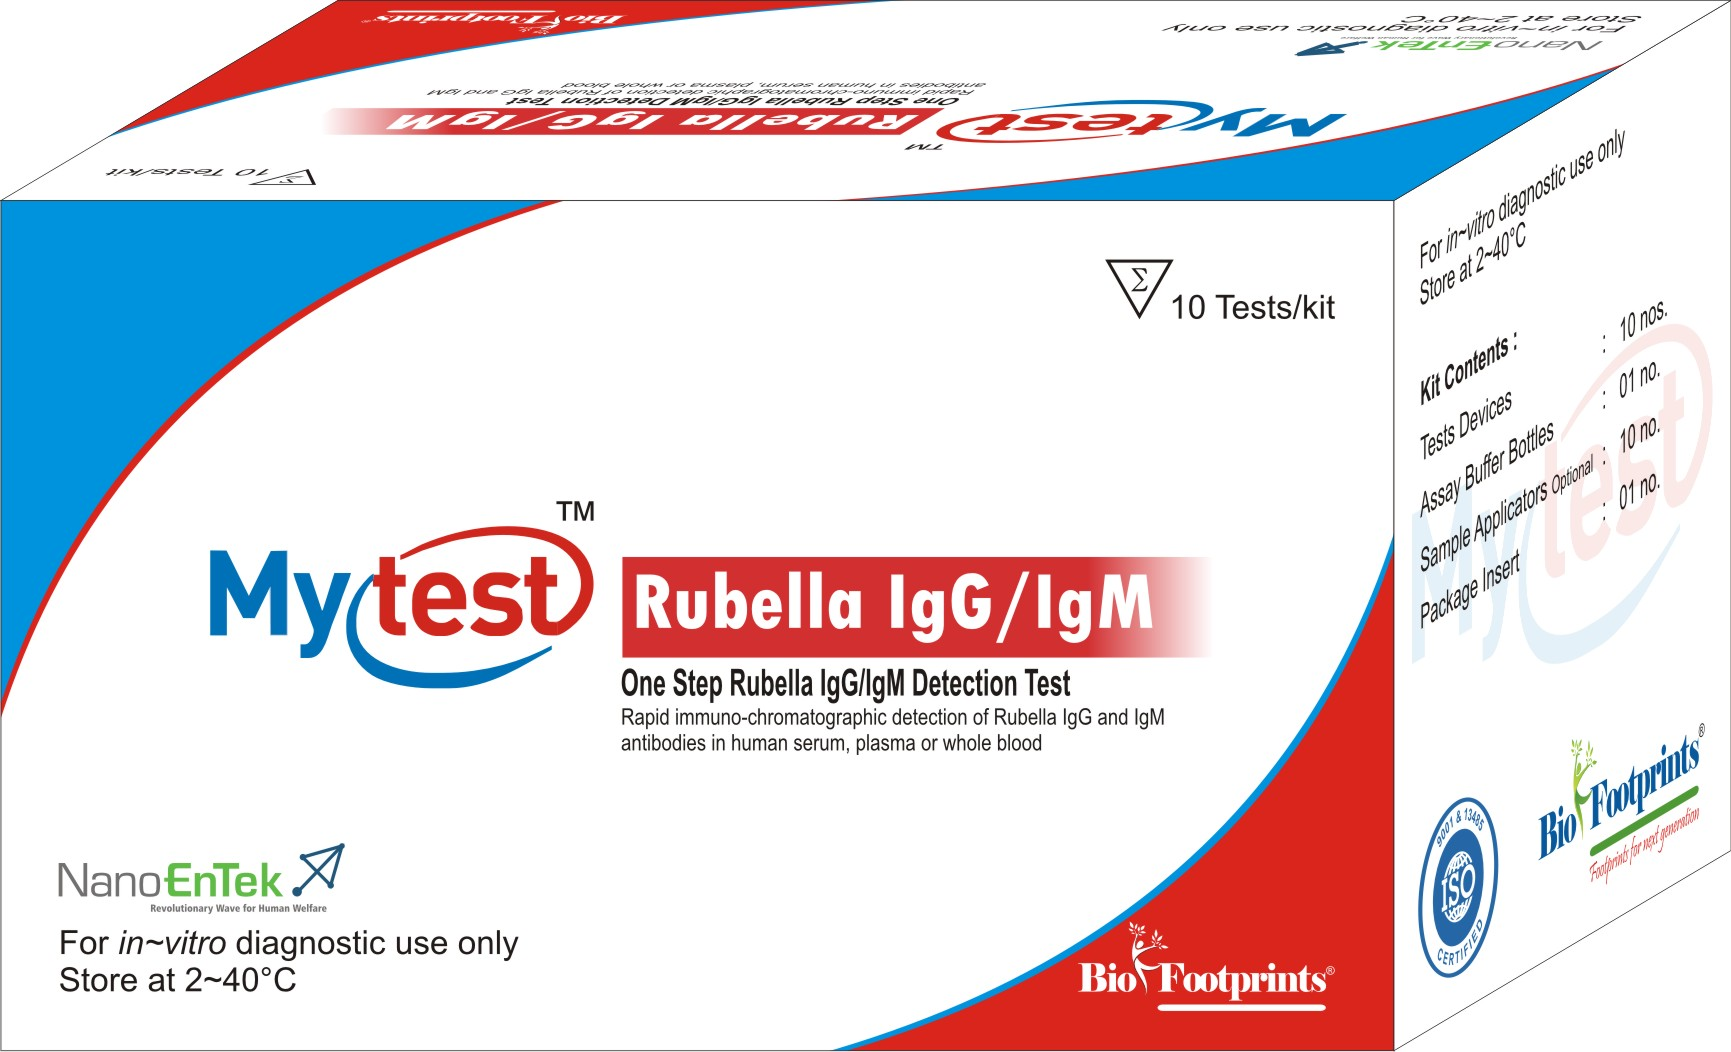 Mytest Rubella IgG/IgM